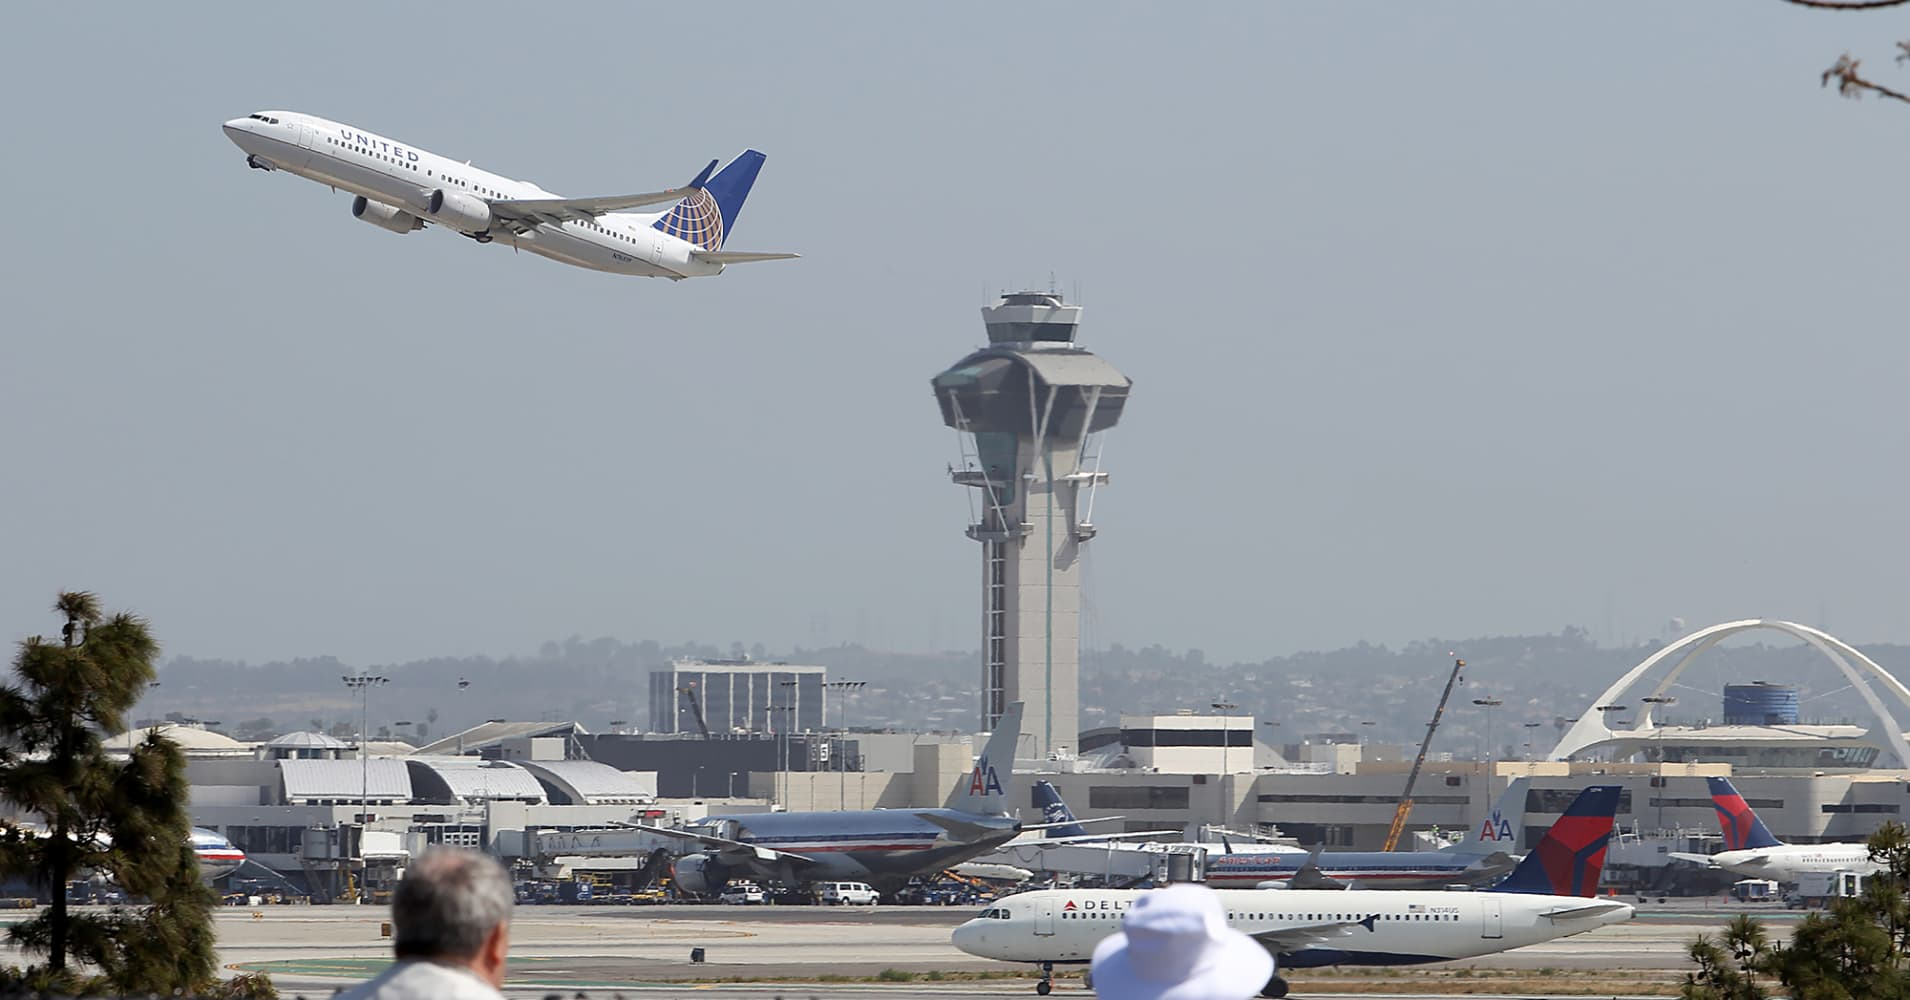 People watch as a United Airlines jet passes the air traffic control tower at Los Angles International Airport during takeoff.